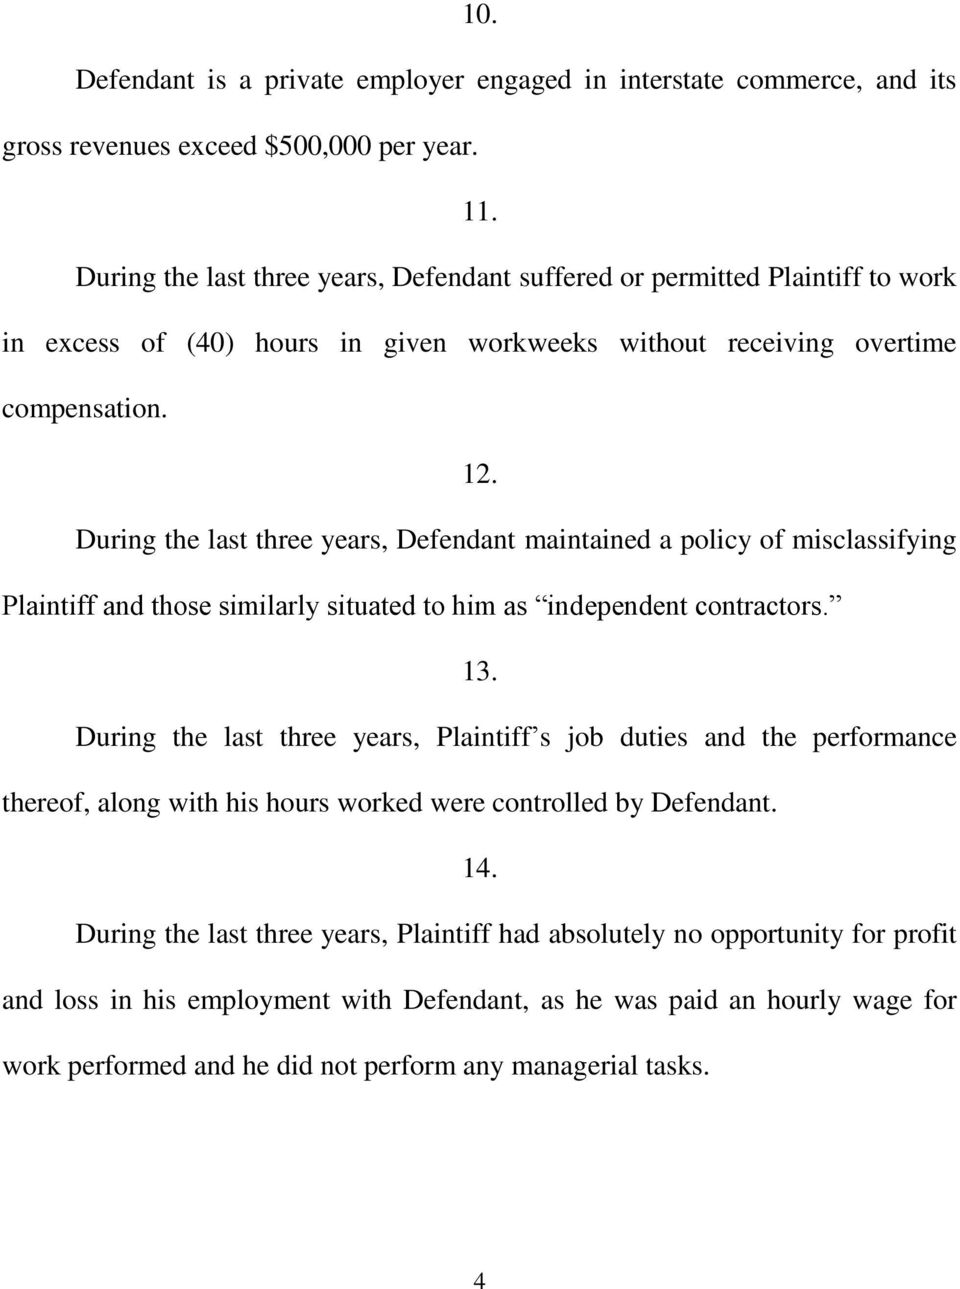 During the last three years, Defendant maintained a policy of misclassifying Plaintiff and those similarly situated to him as independent contractors. 13.